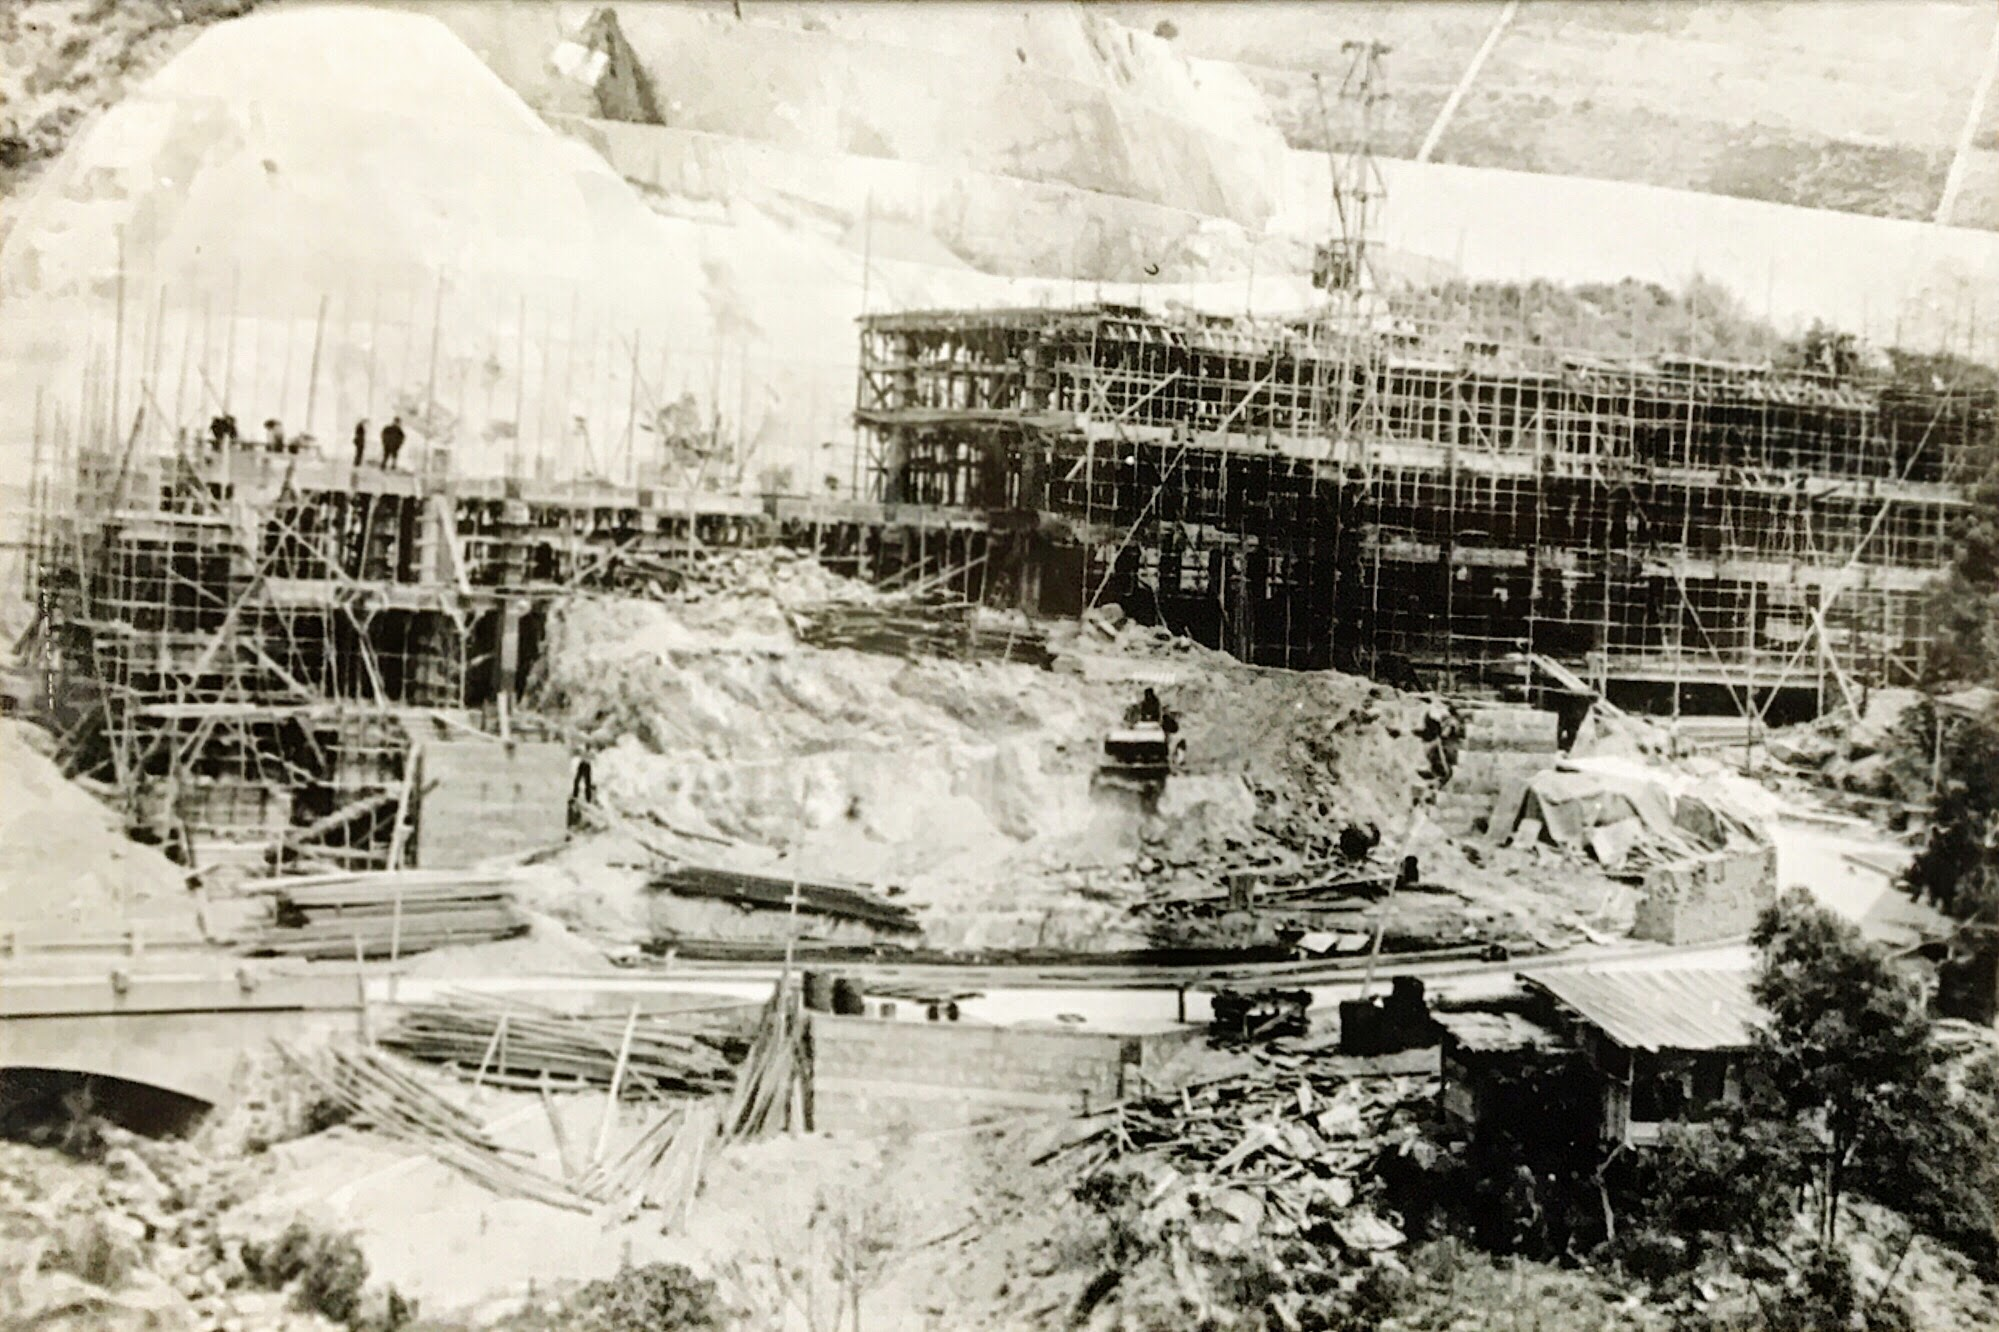 Theology Building under Construction